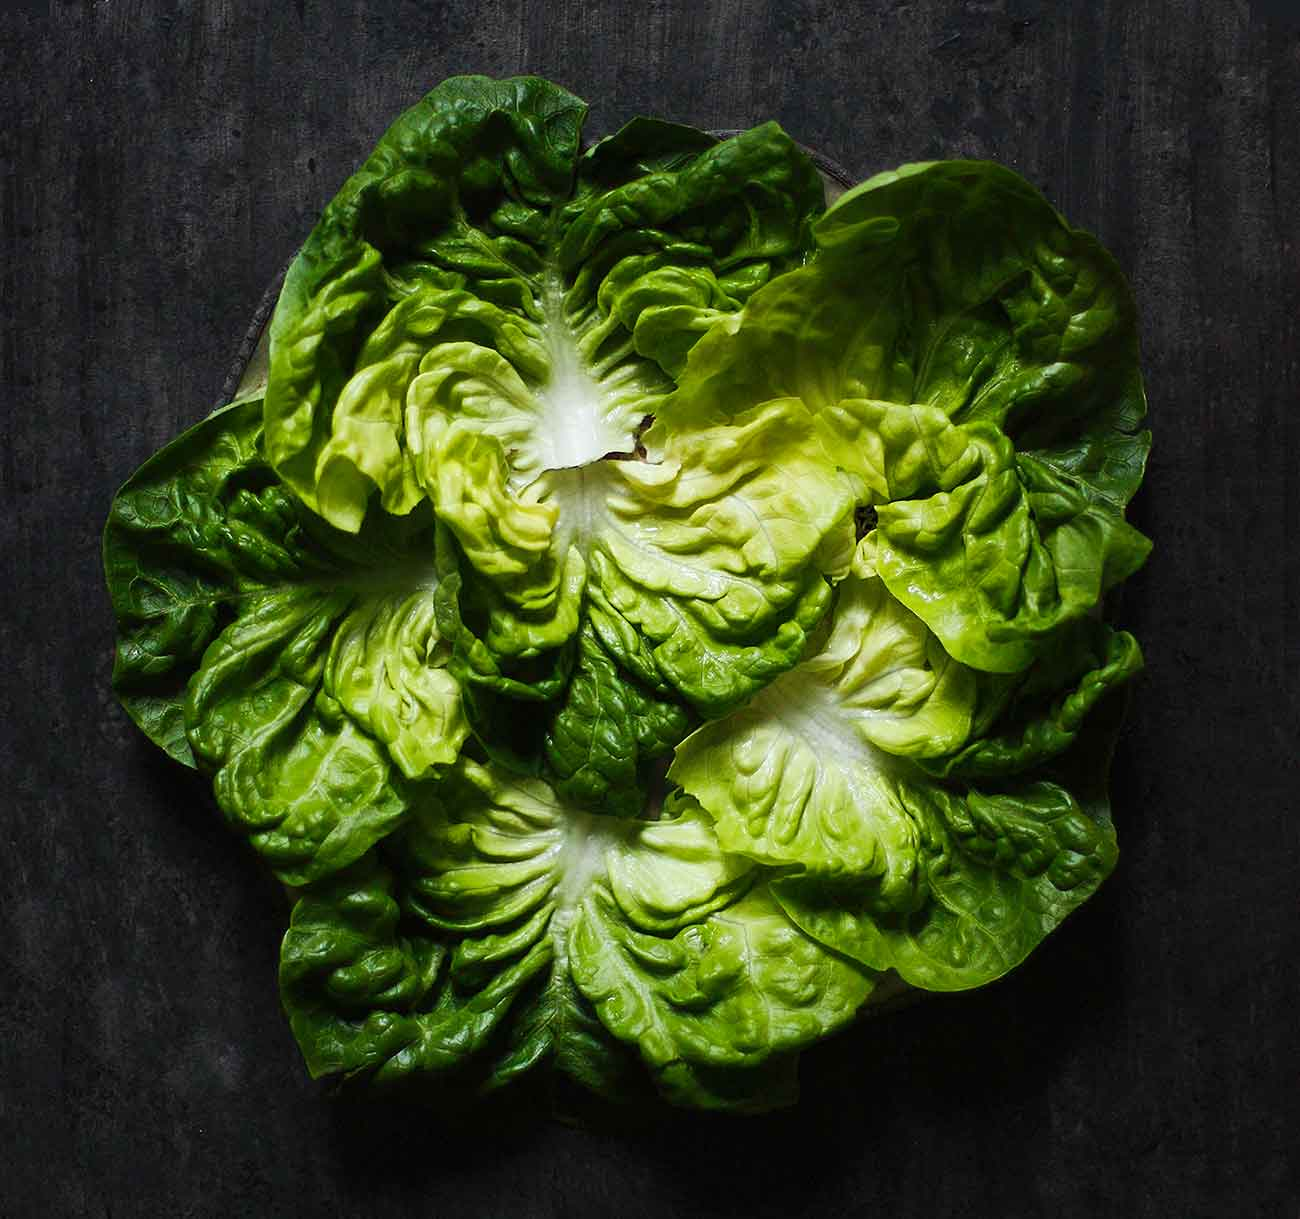 Leaves of Boston lettuce arranged in a circle.